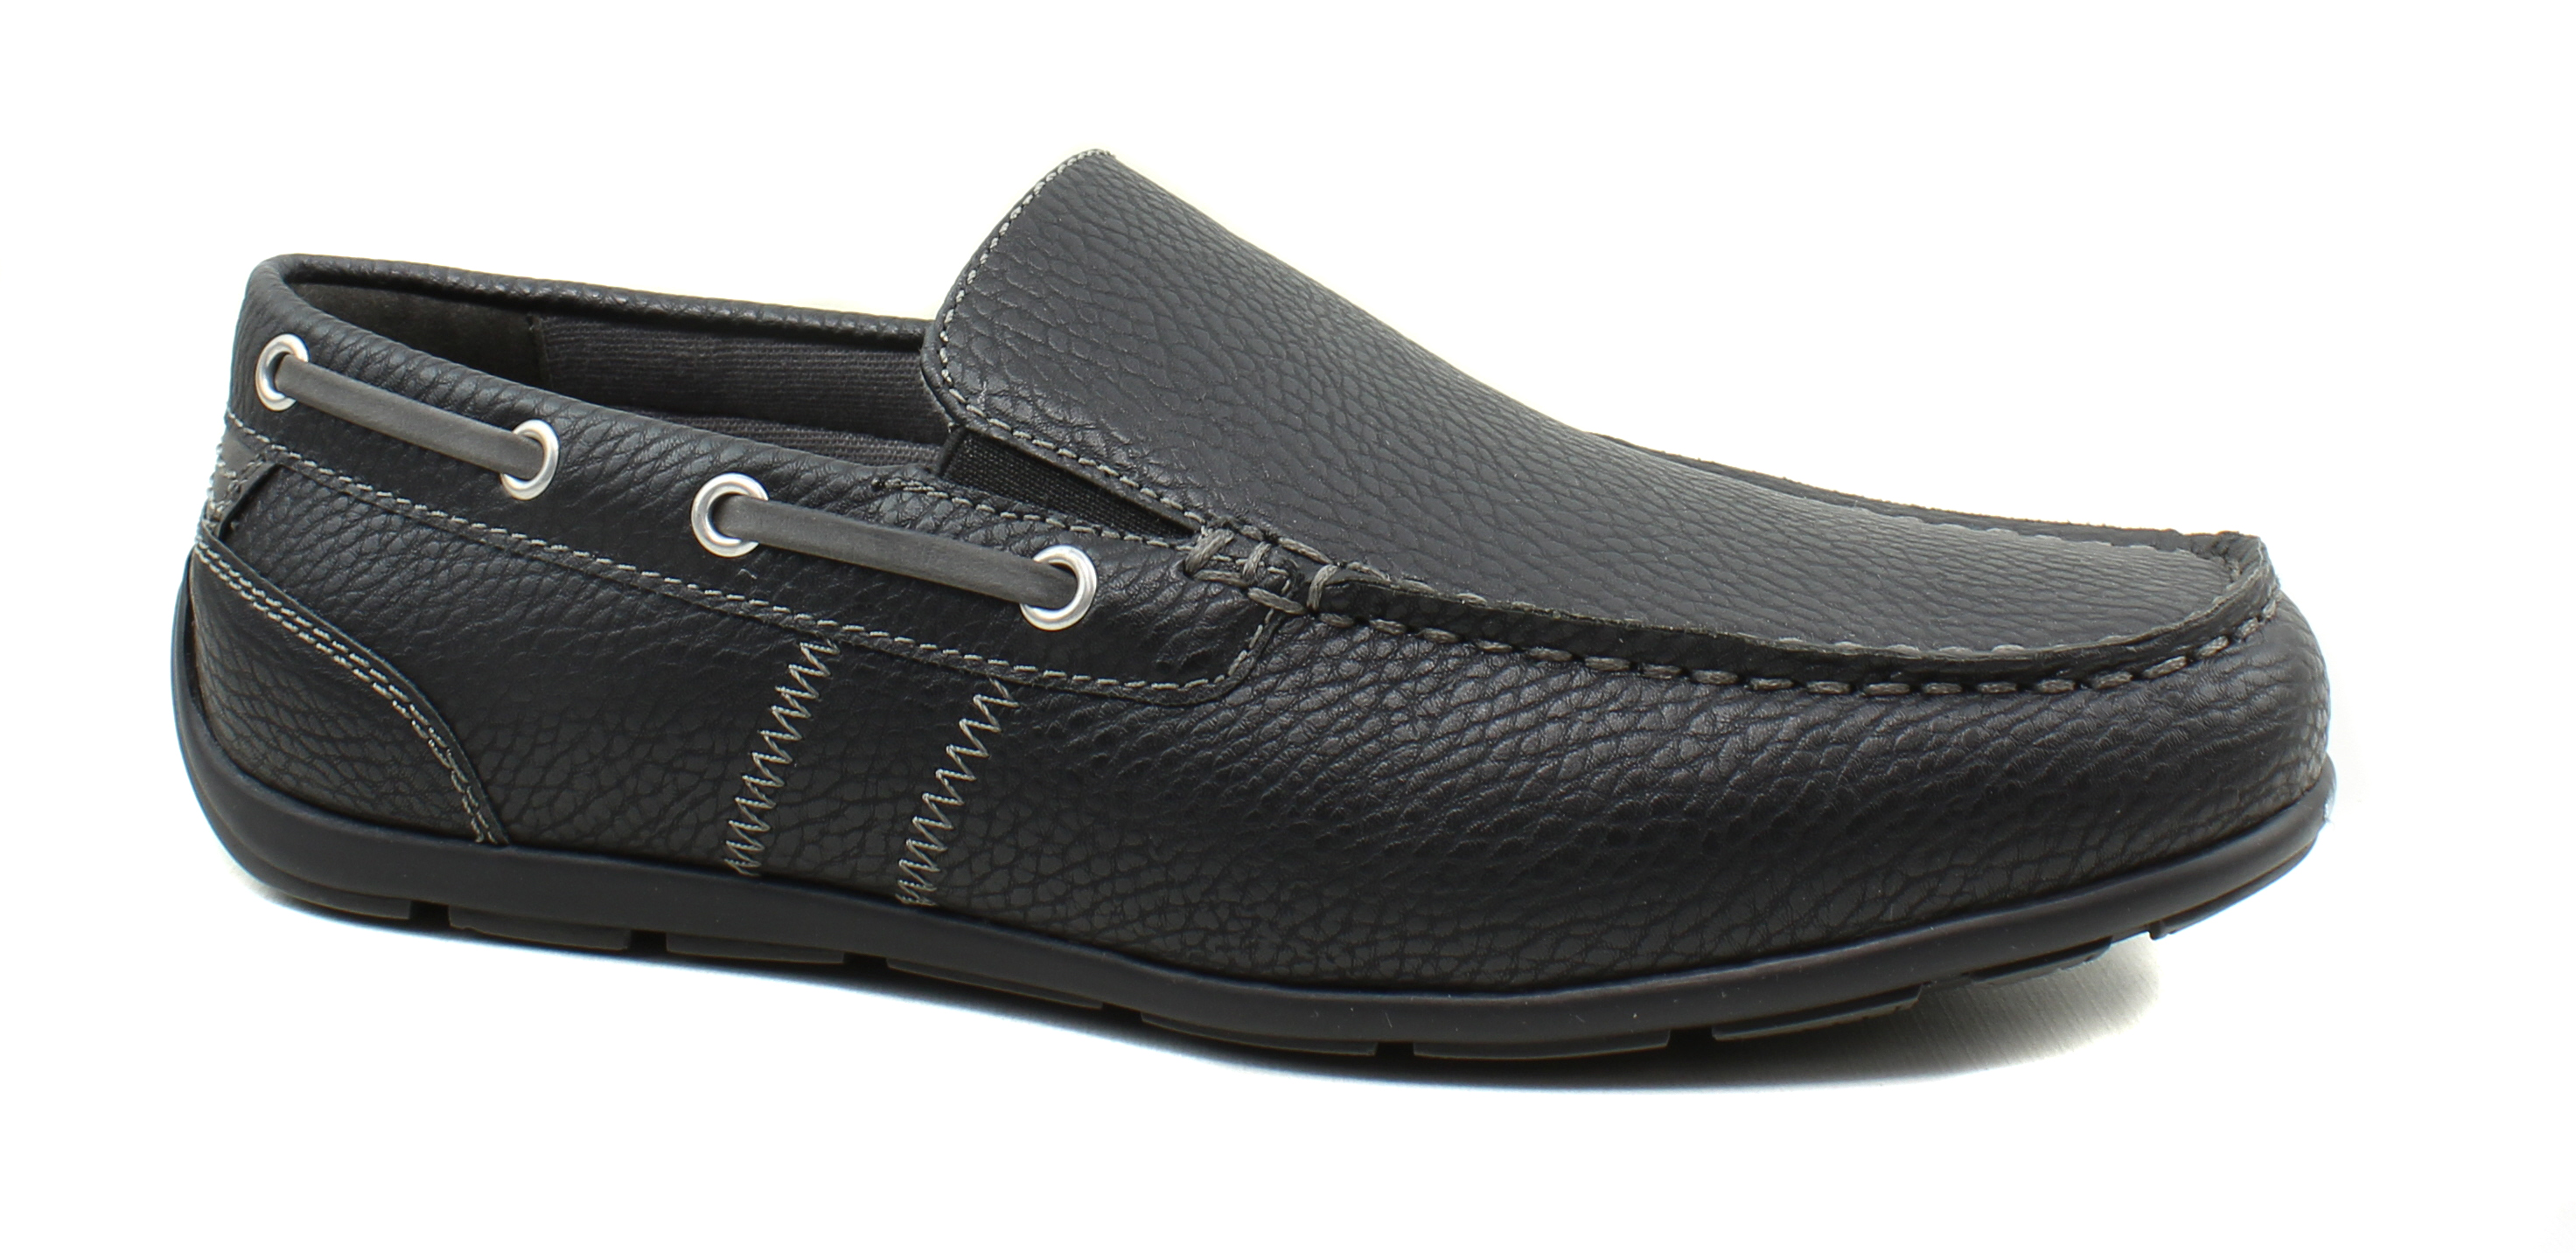 GBX Ludlam Mens Black Leather Casual